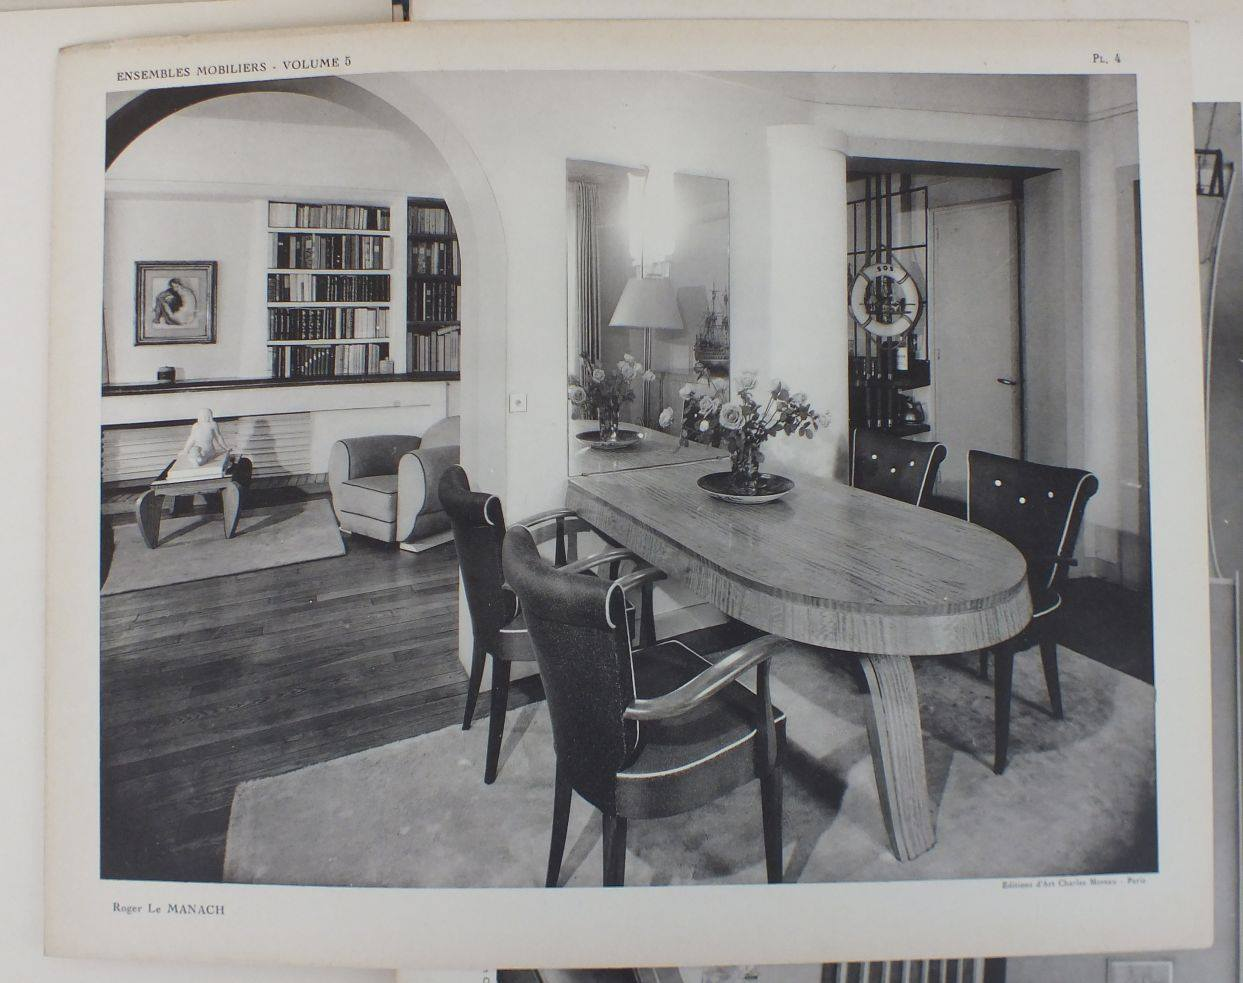 Image from Ensembles Mobiliers, Volume 5. Interior by Roger Le Manach. Publication created by Charles Moreau.